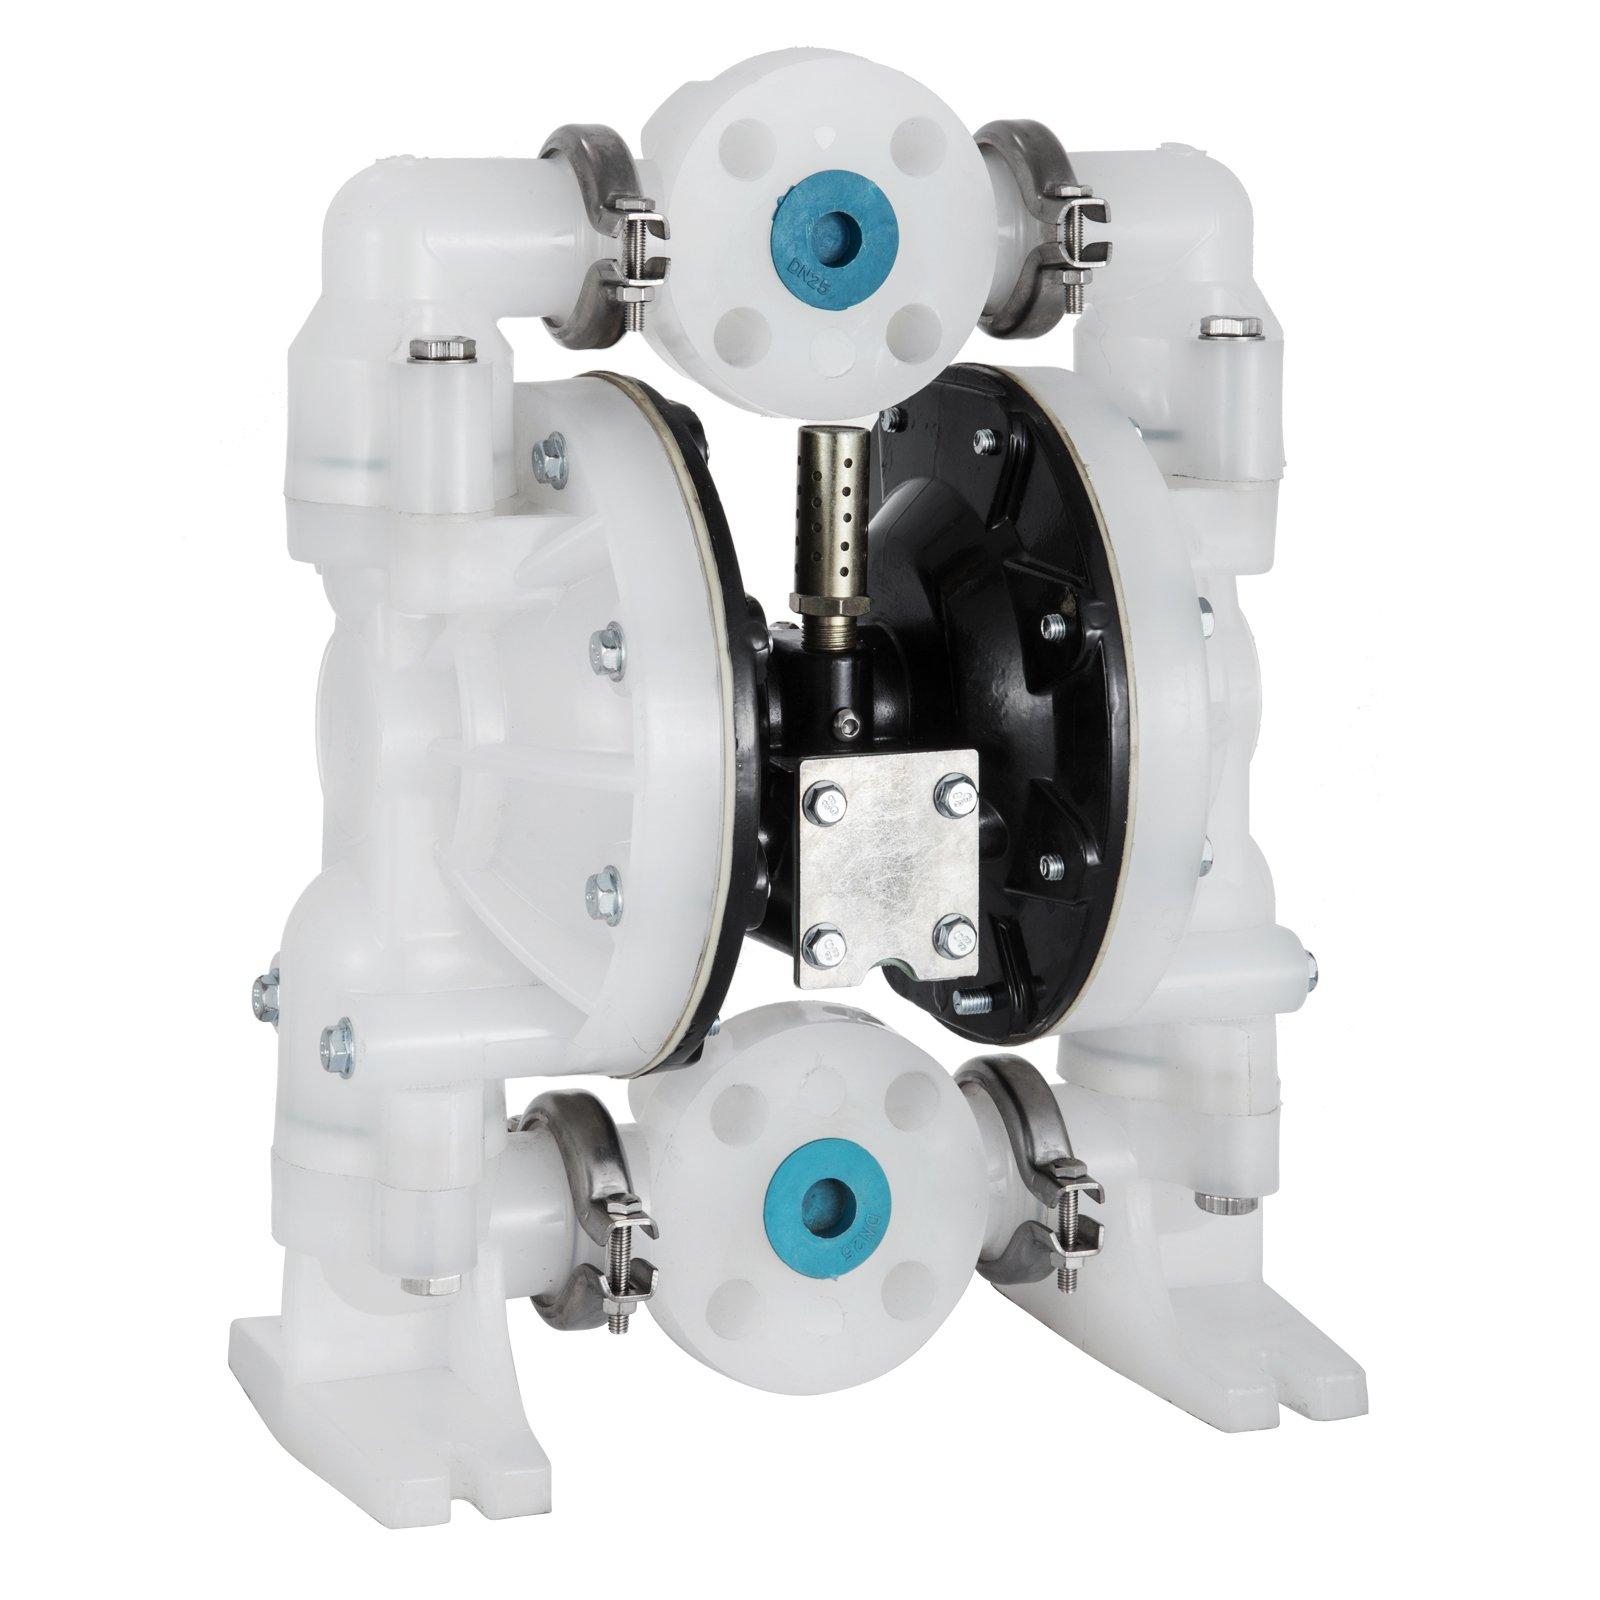 Happybuy Air-Operated Double Diaphragm Pump 72GPM Polypropylene Max 120PSI for Chemical Industrial Use